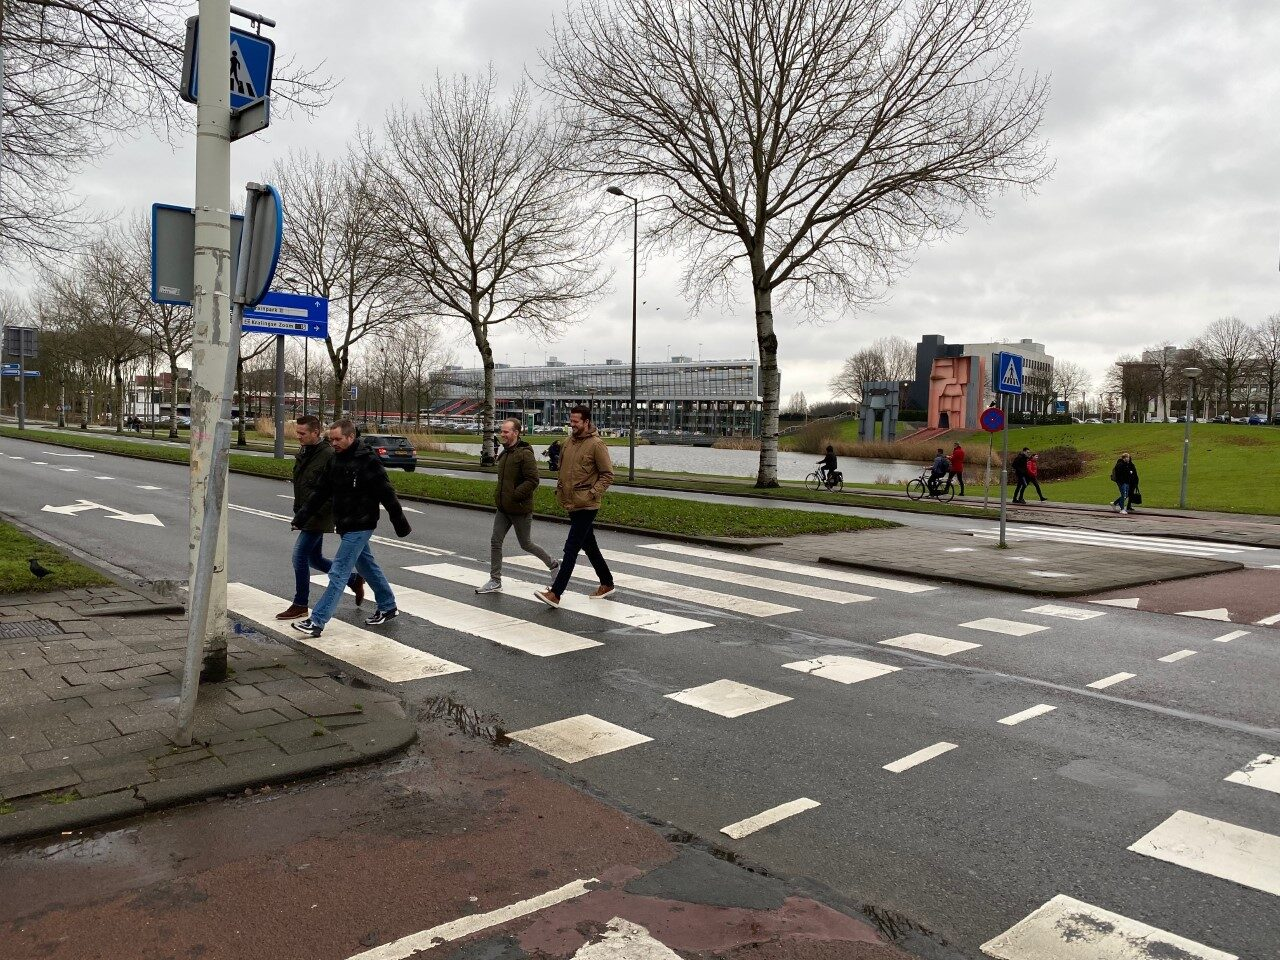 The zebra crossing where the accident took place.